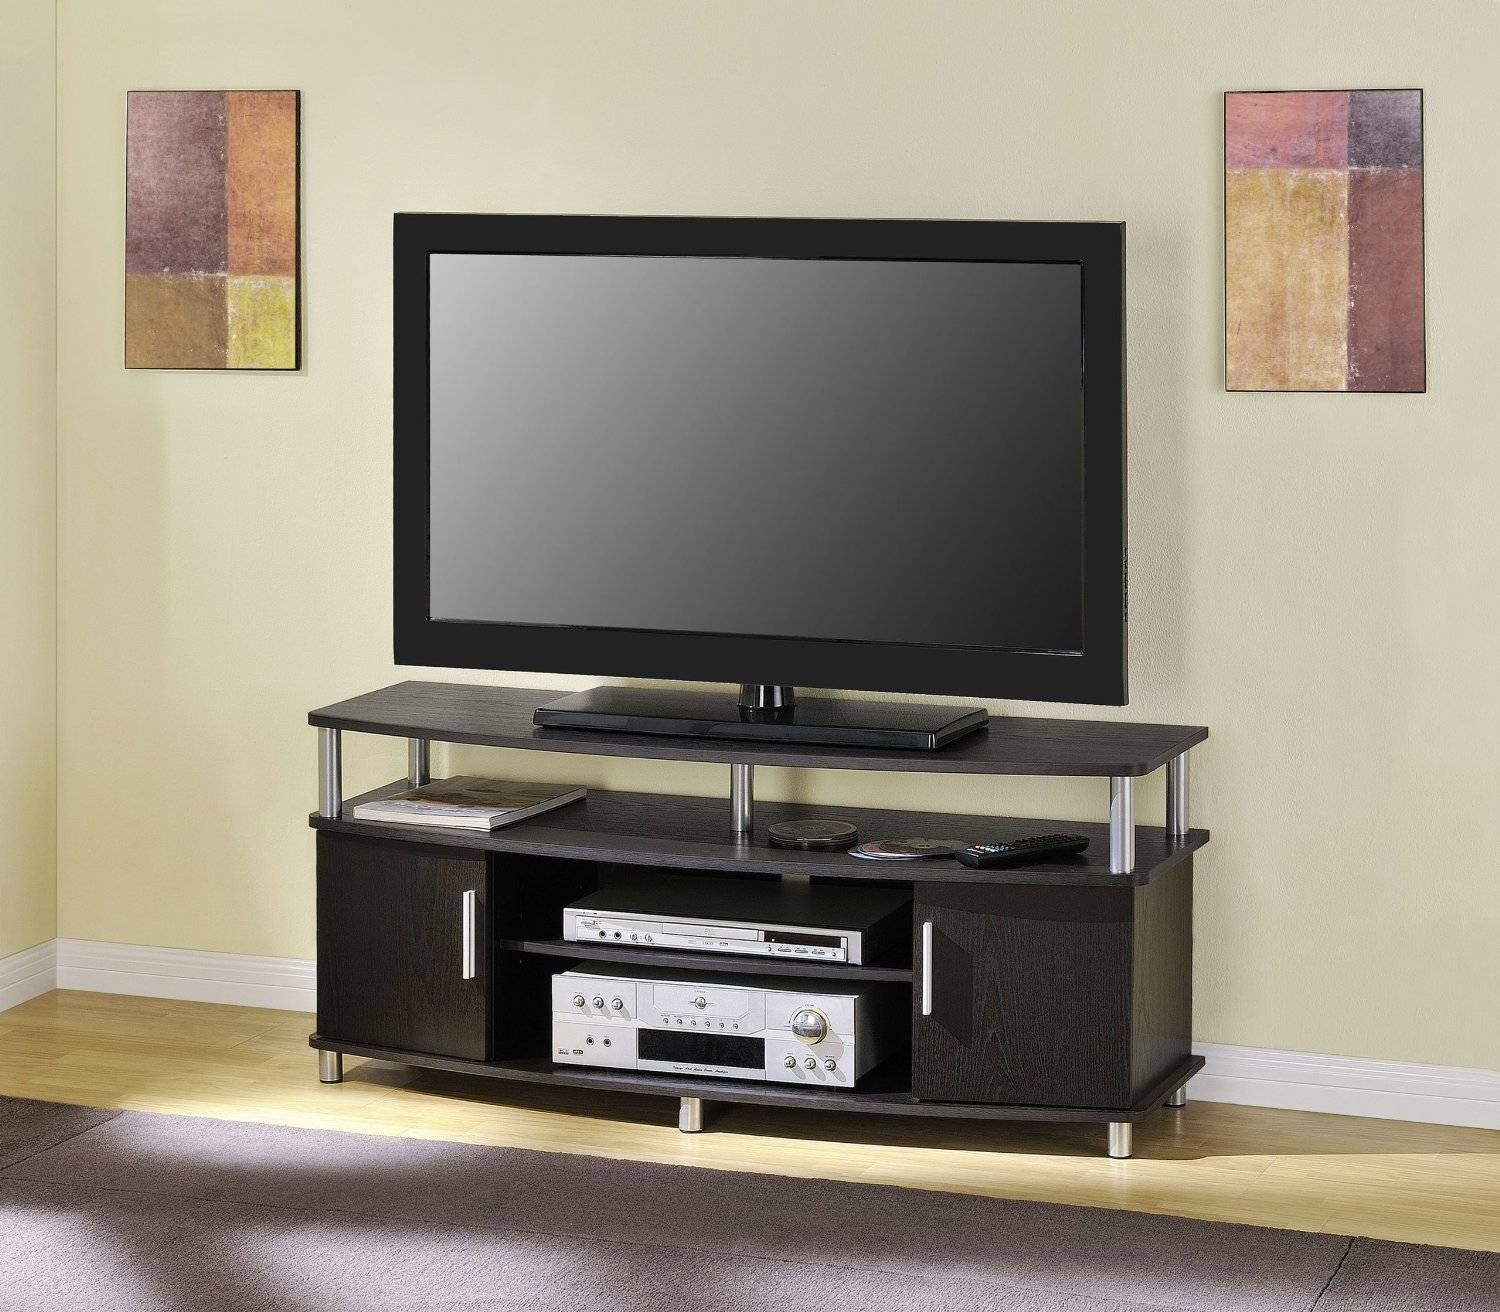 15 ideas of modern tv stands for 60 inch tvs - Best size flat screen tv for living room ...